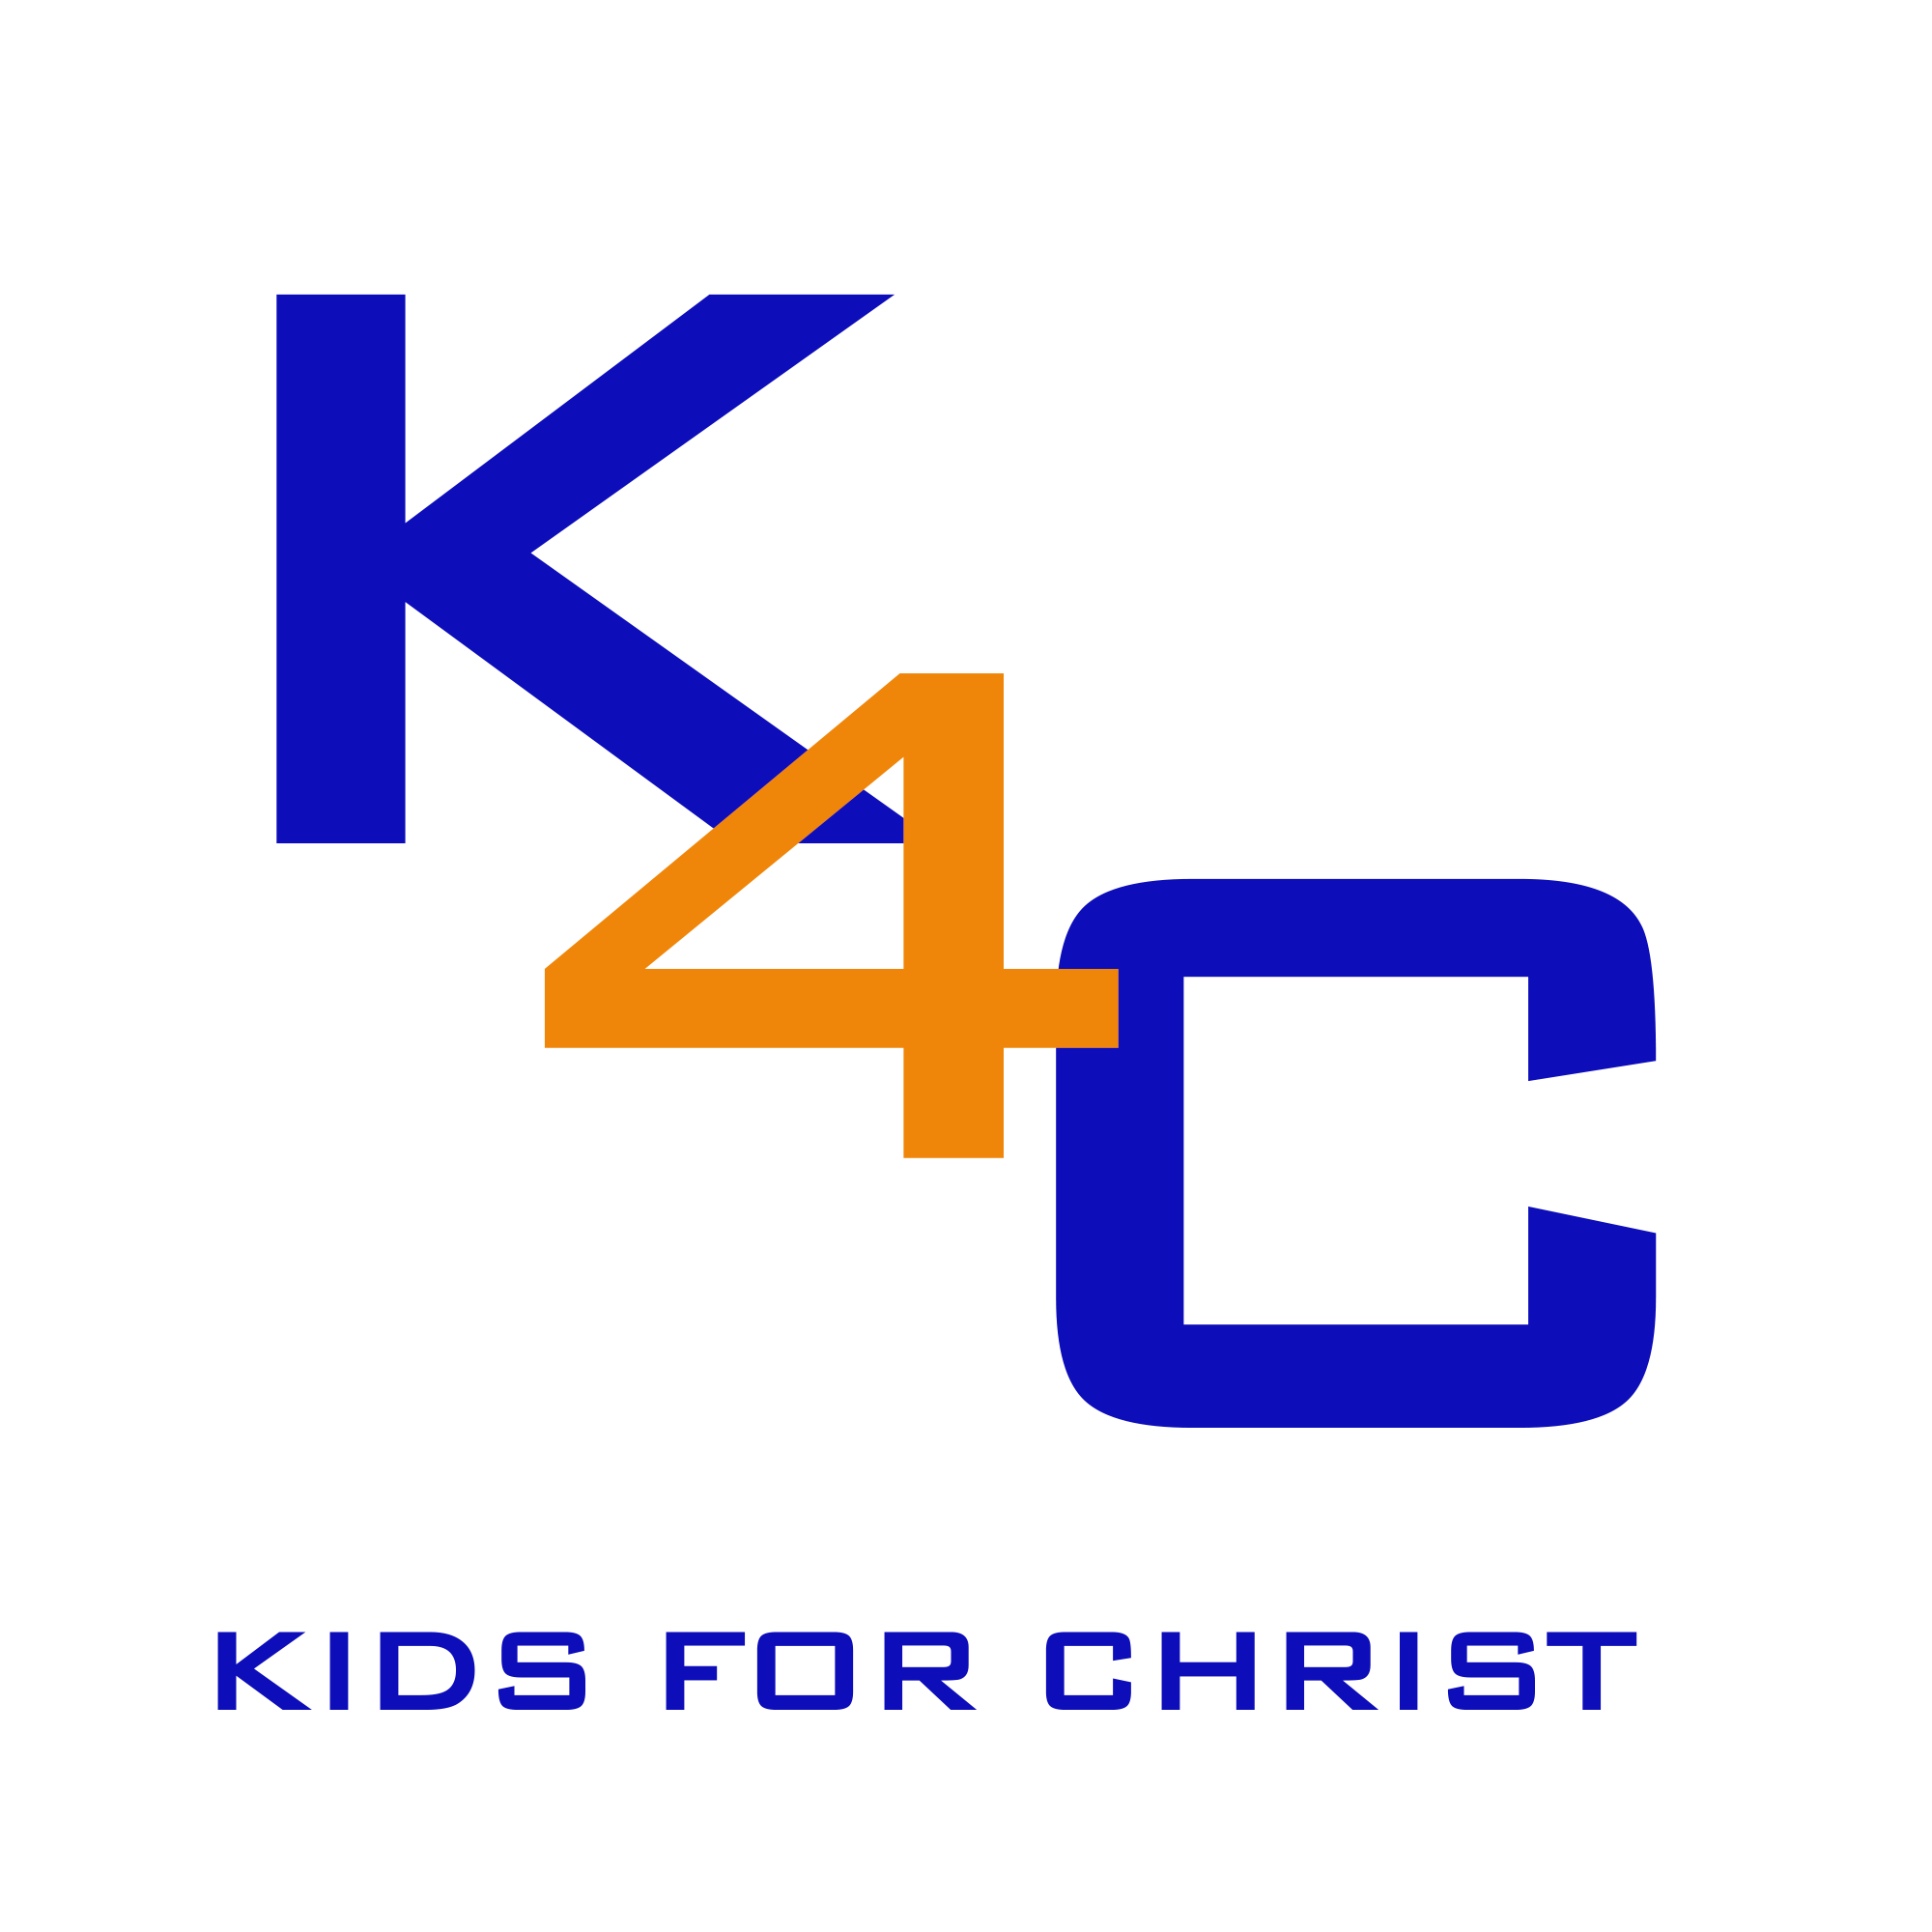 KIDS FOR CHRIST - Children and families come together at church on Sundays at 11.00am before the children depart to another part of the school for K4C before rejoining the church family toward the end of the service.